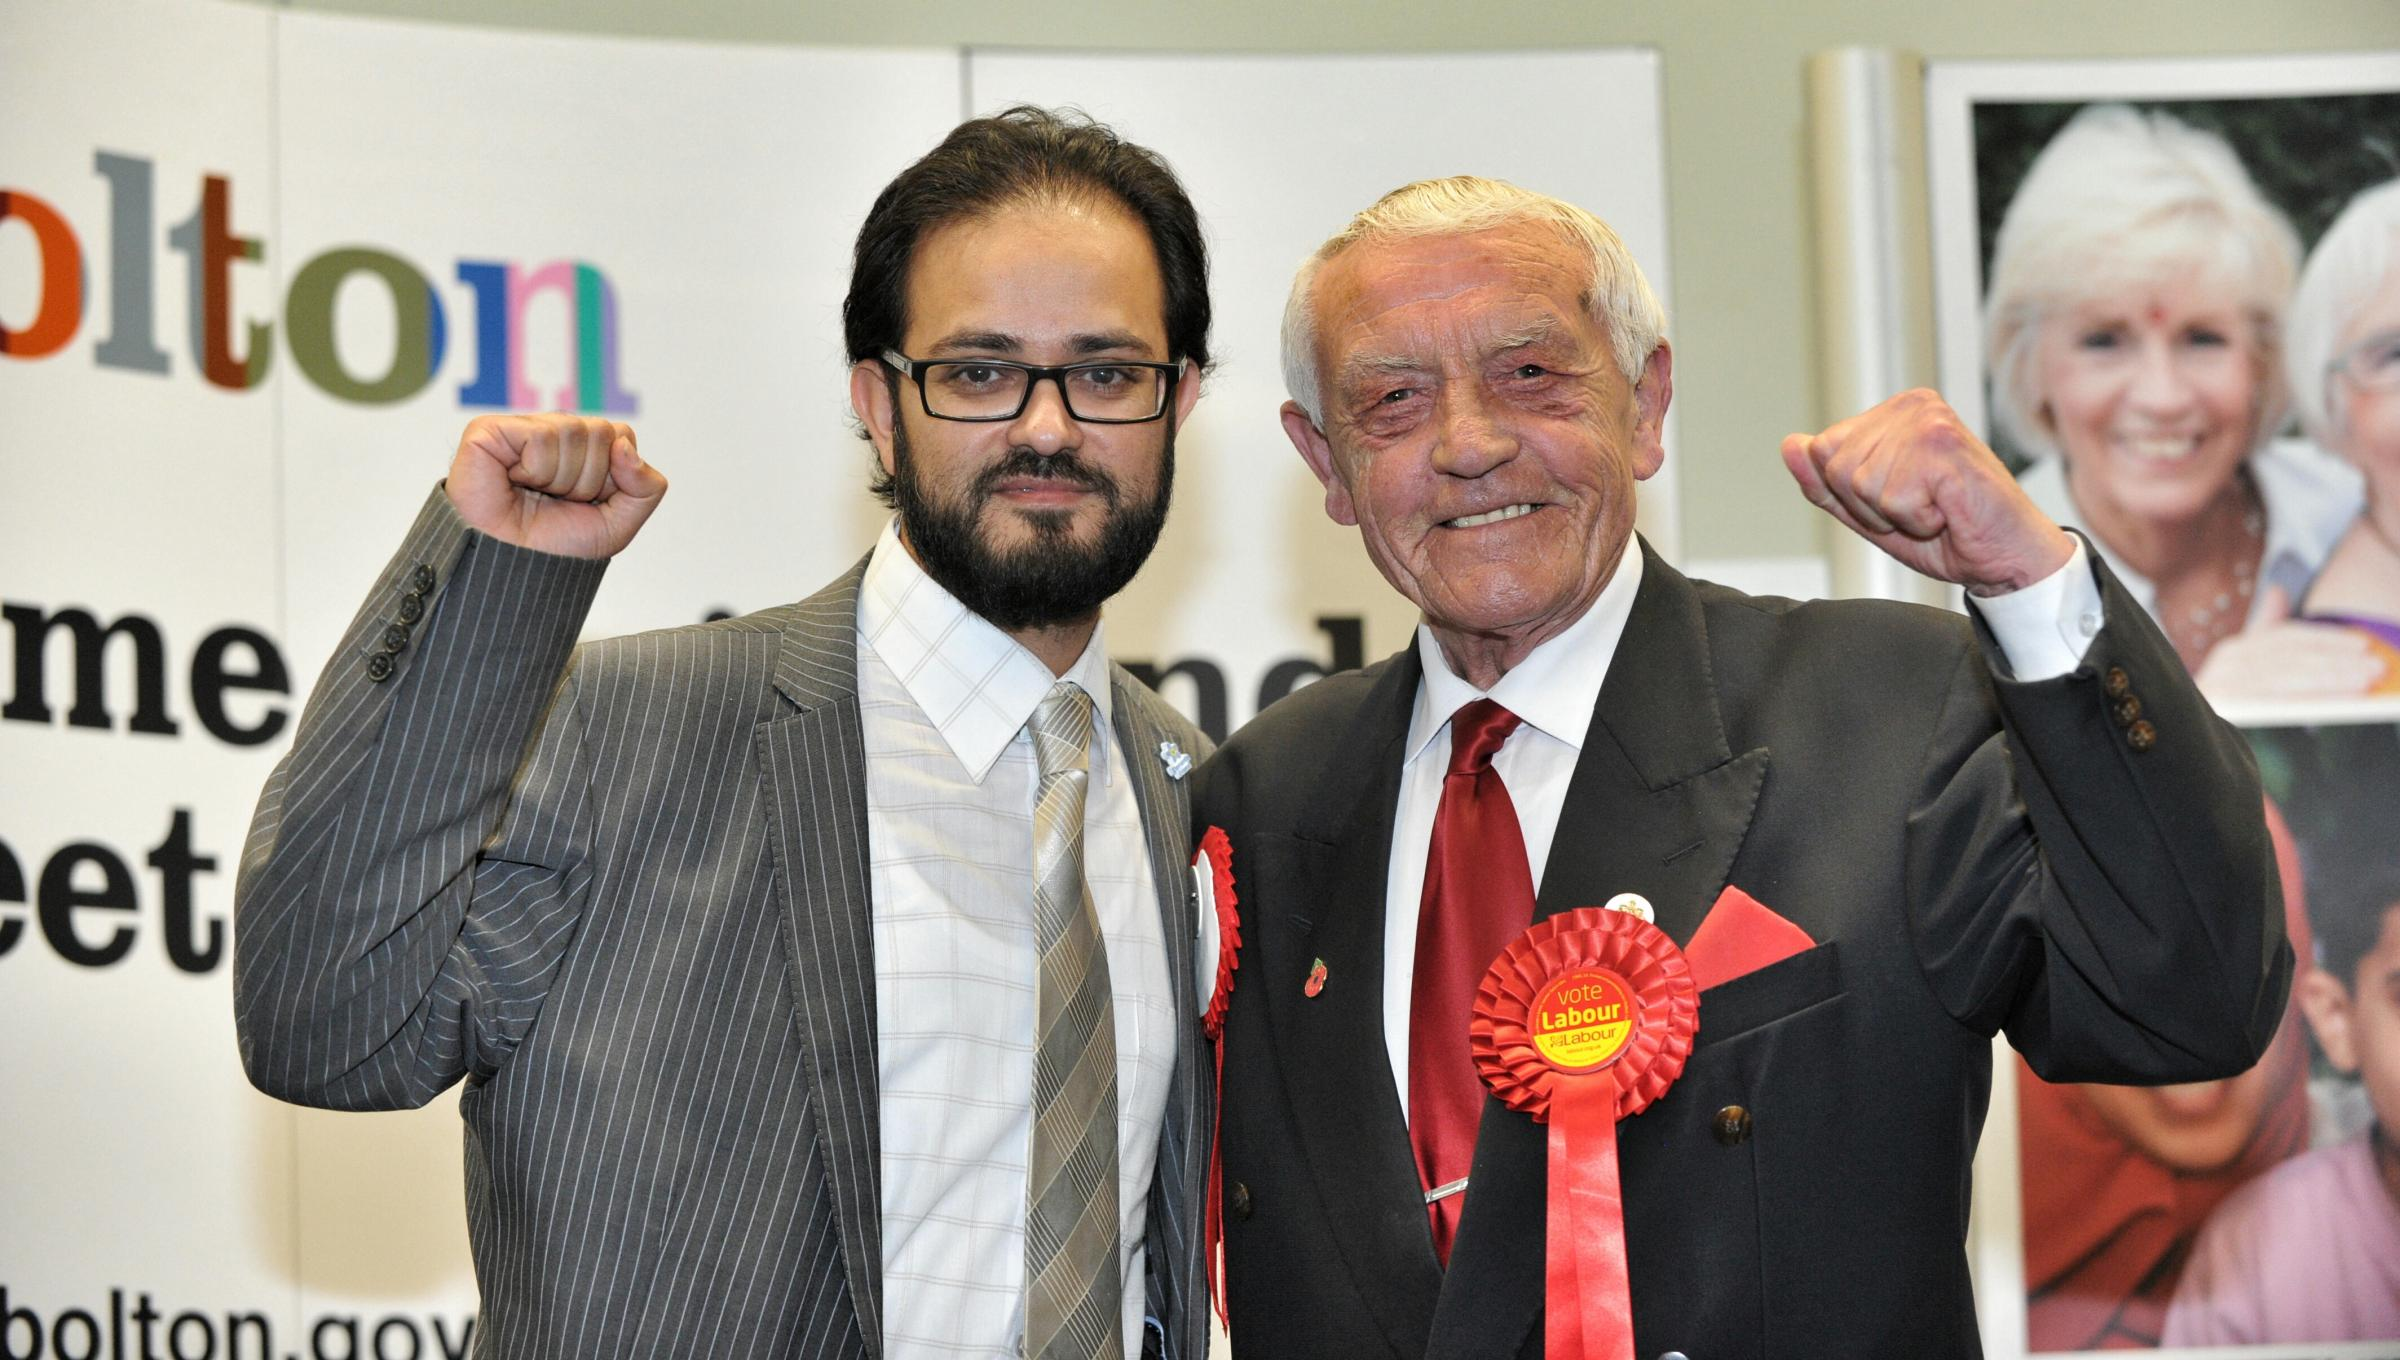 Cllr Asif Ibrahim, left, resigned last month